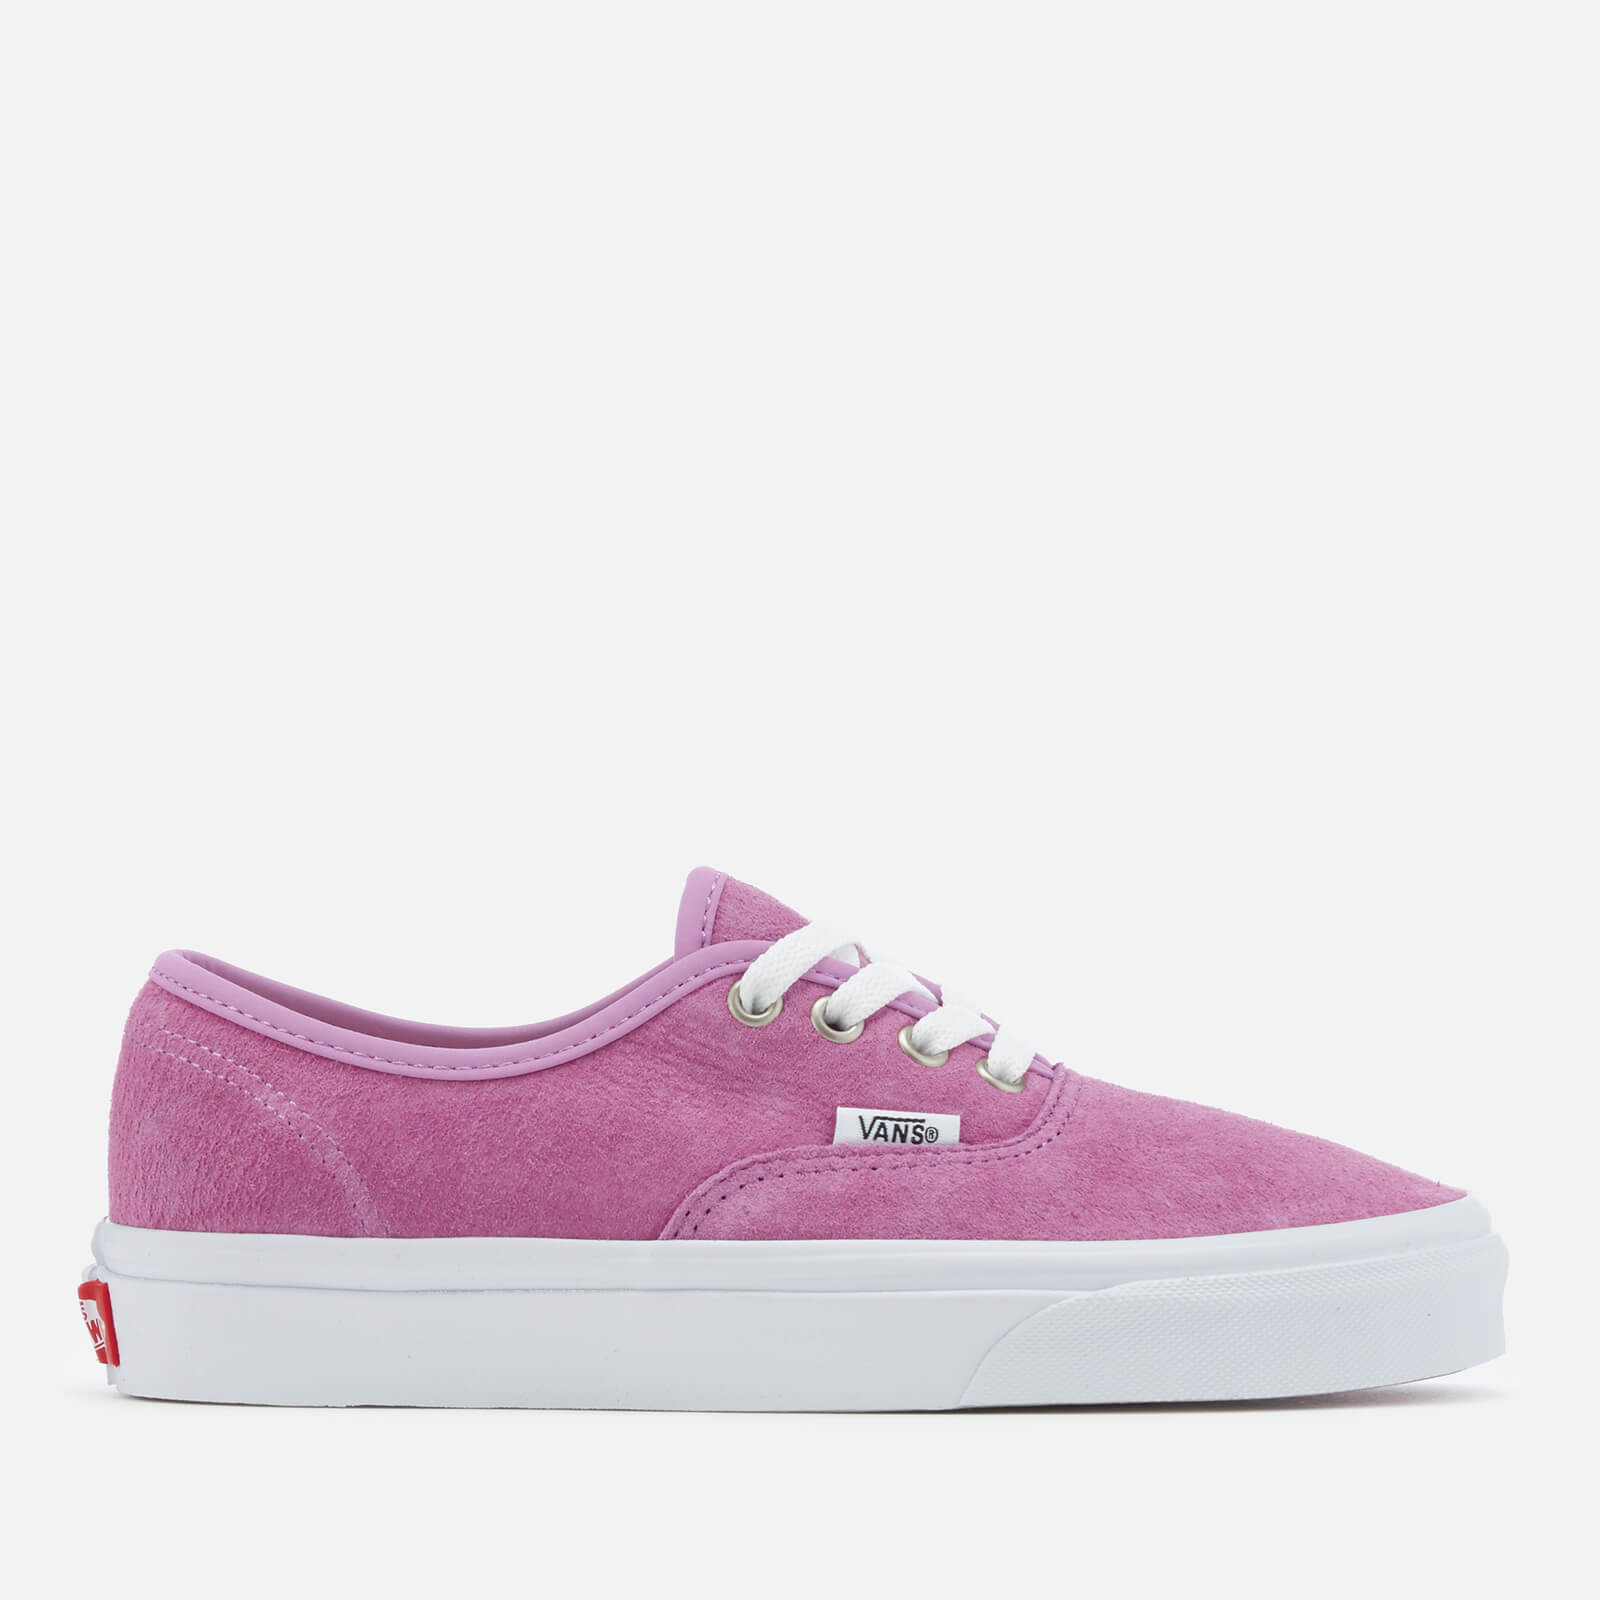 e680408da5 Vans Women s Authentic Suede Trainers - Purple True White - Free UK  Delivery over £50